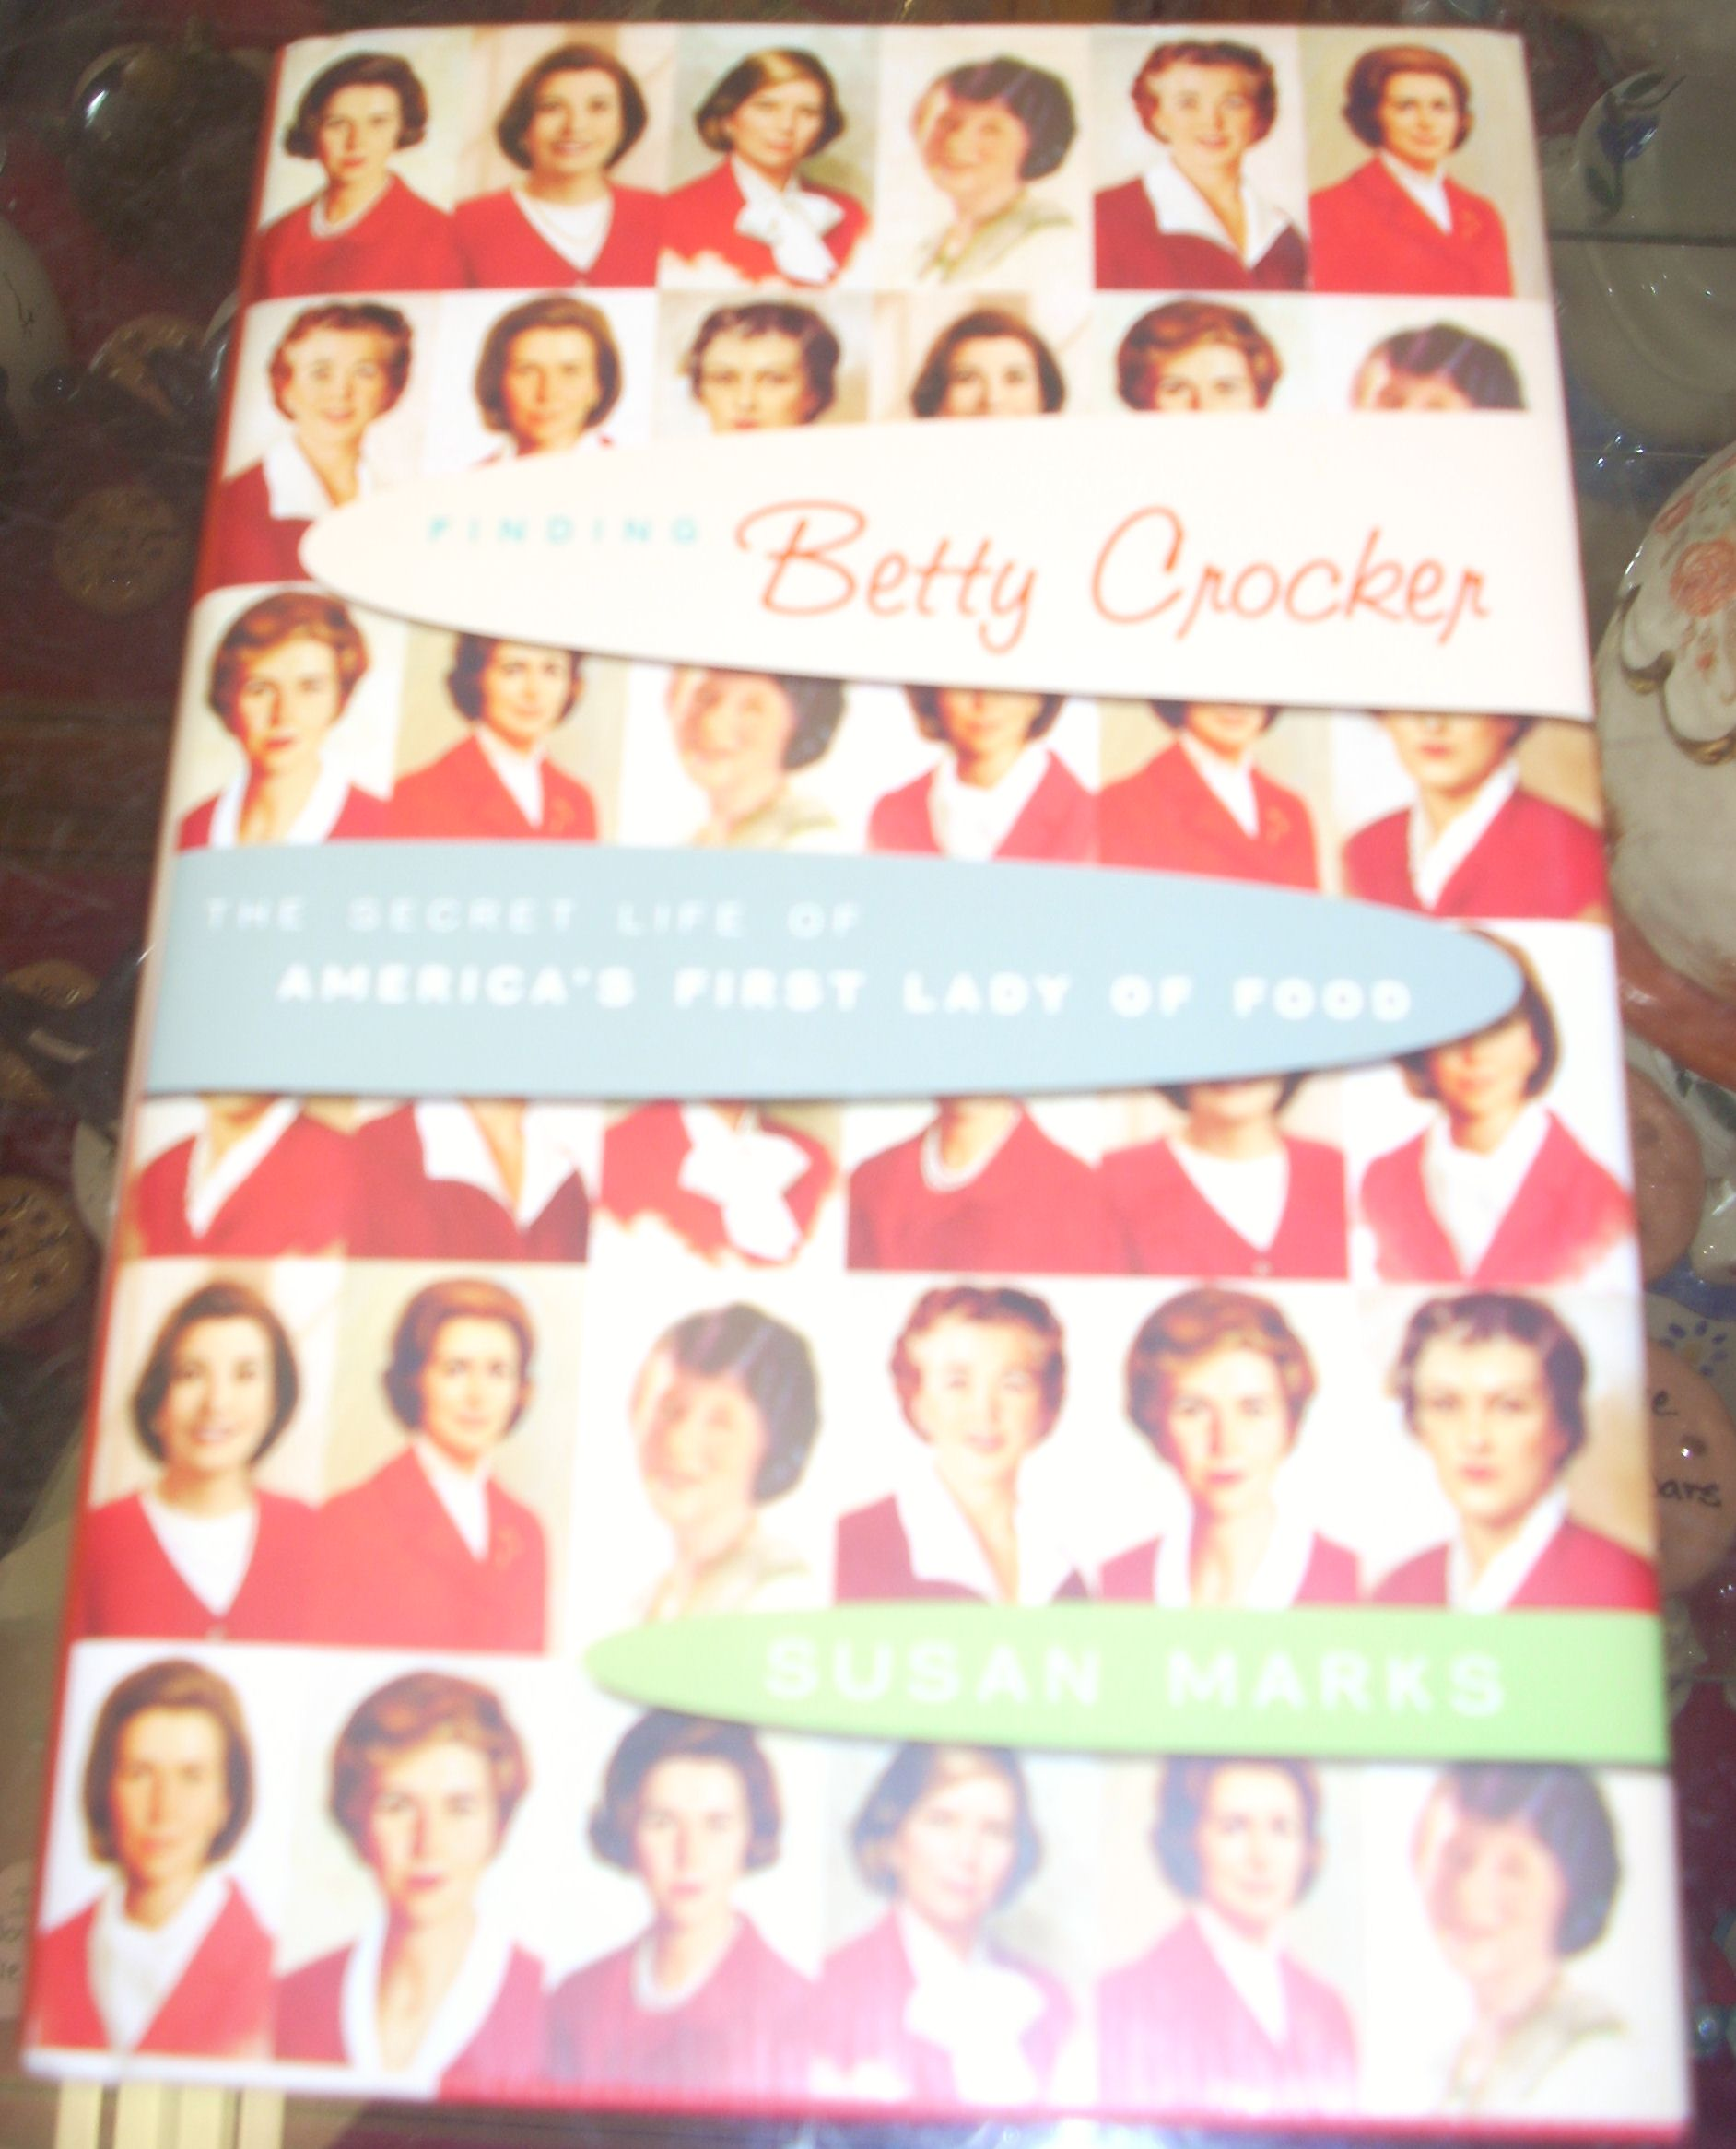 HD Quality Wallpaper | Collection: Artistic, 1884x2332 Finding Betty Crocker: The Secret Life Of America's First La